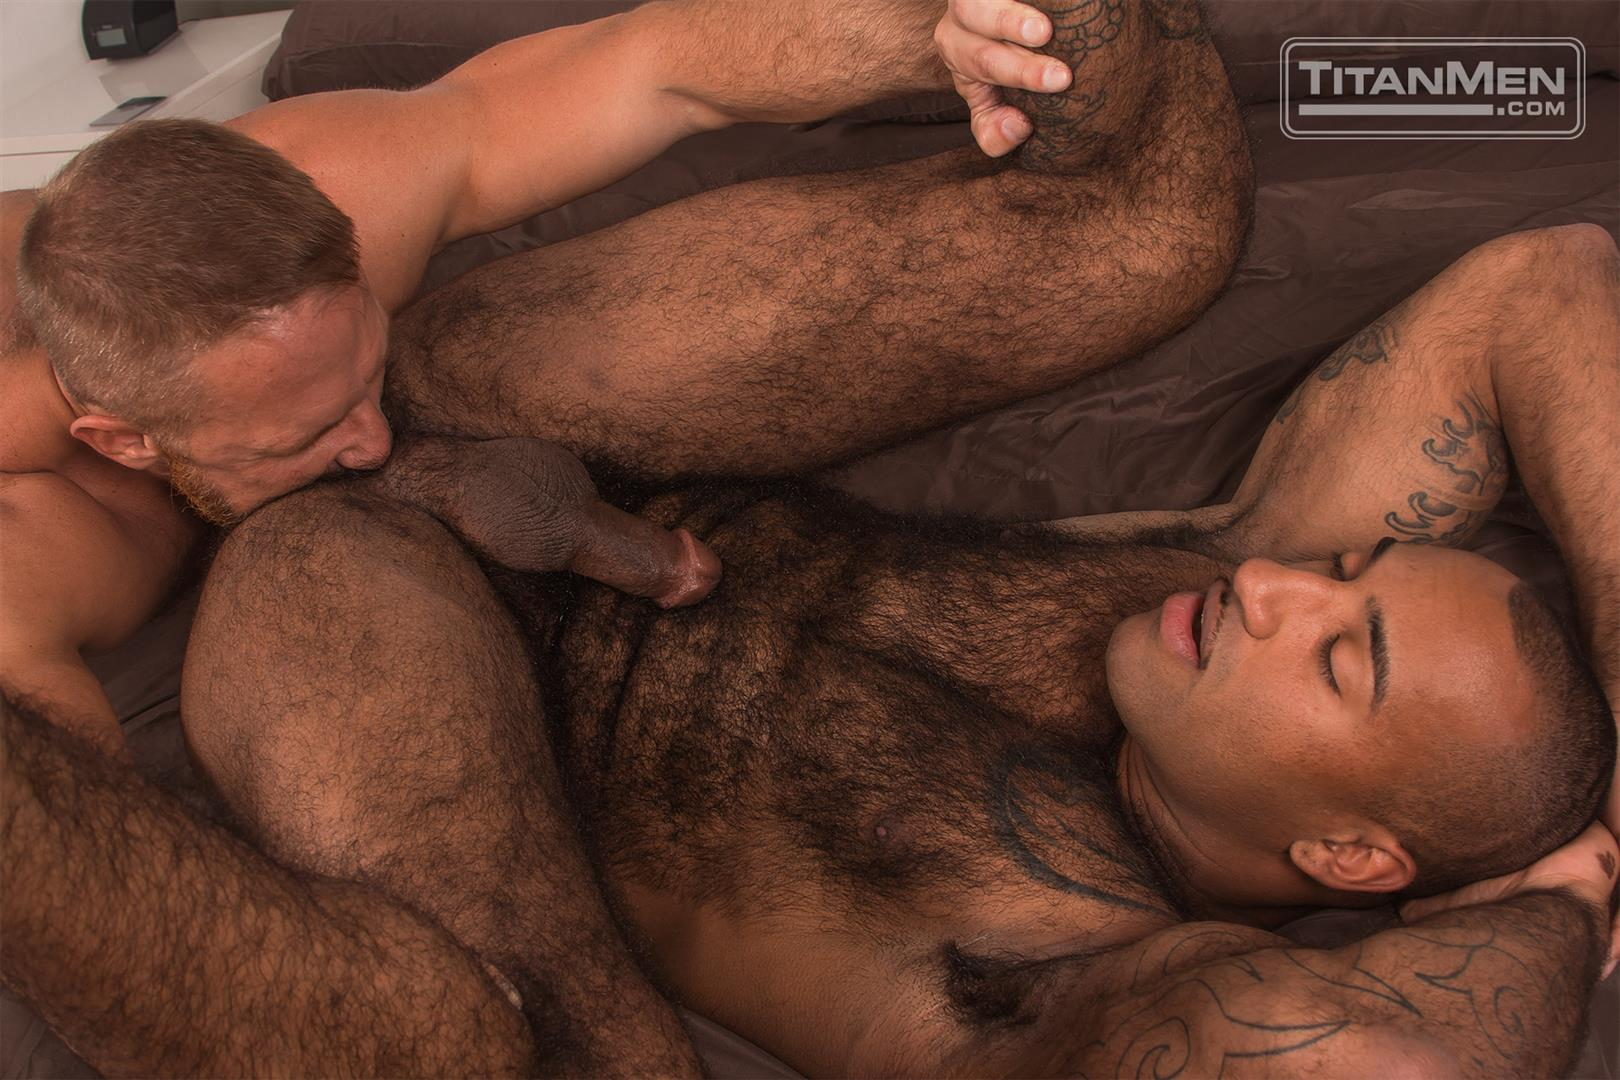 Titan-Men-Dirk-Caber-and-Daymin-Voss-Hairy-Muscle-Daddy-and-Big-Black-Dick-Fucking-47 Hairy Muscle Daddy Dirk Caber Flip Fucking With Hairy Black Muscle Hunk Daymin Voss